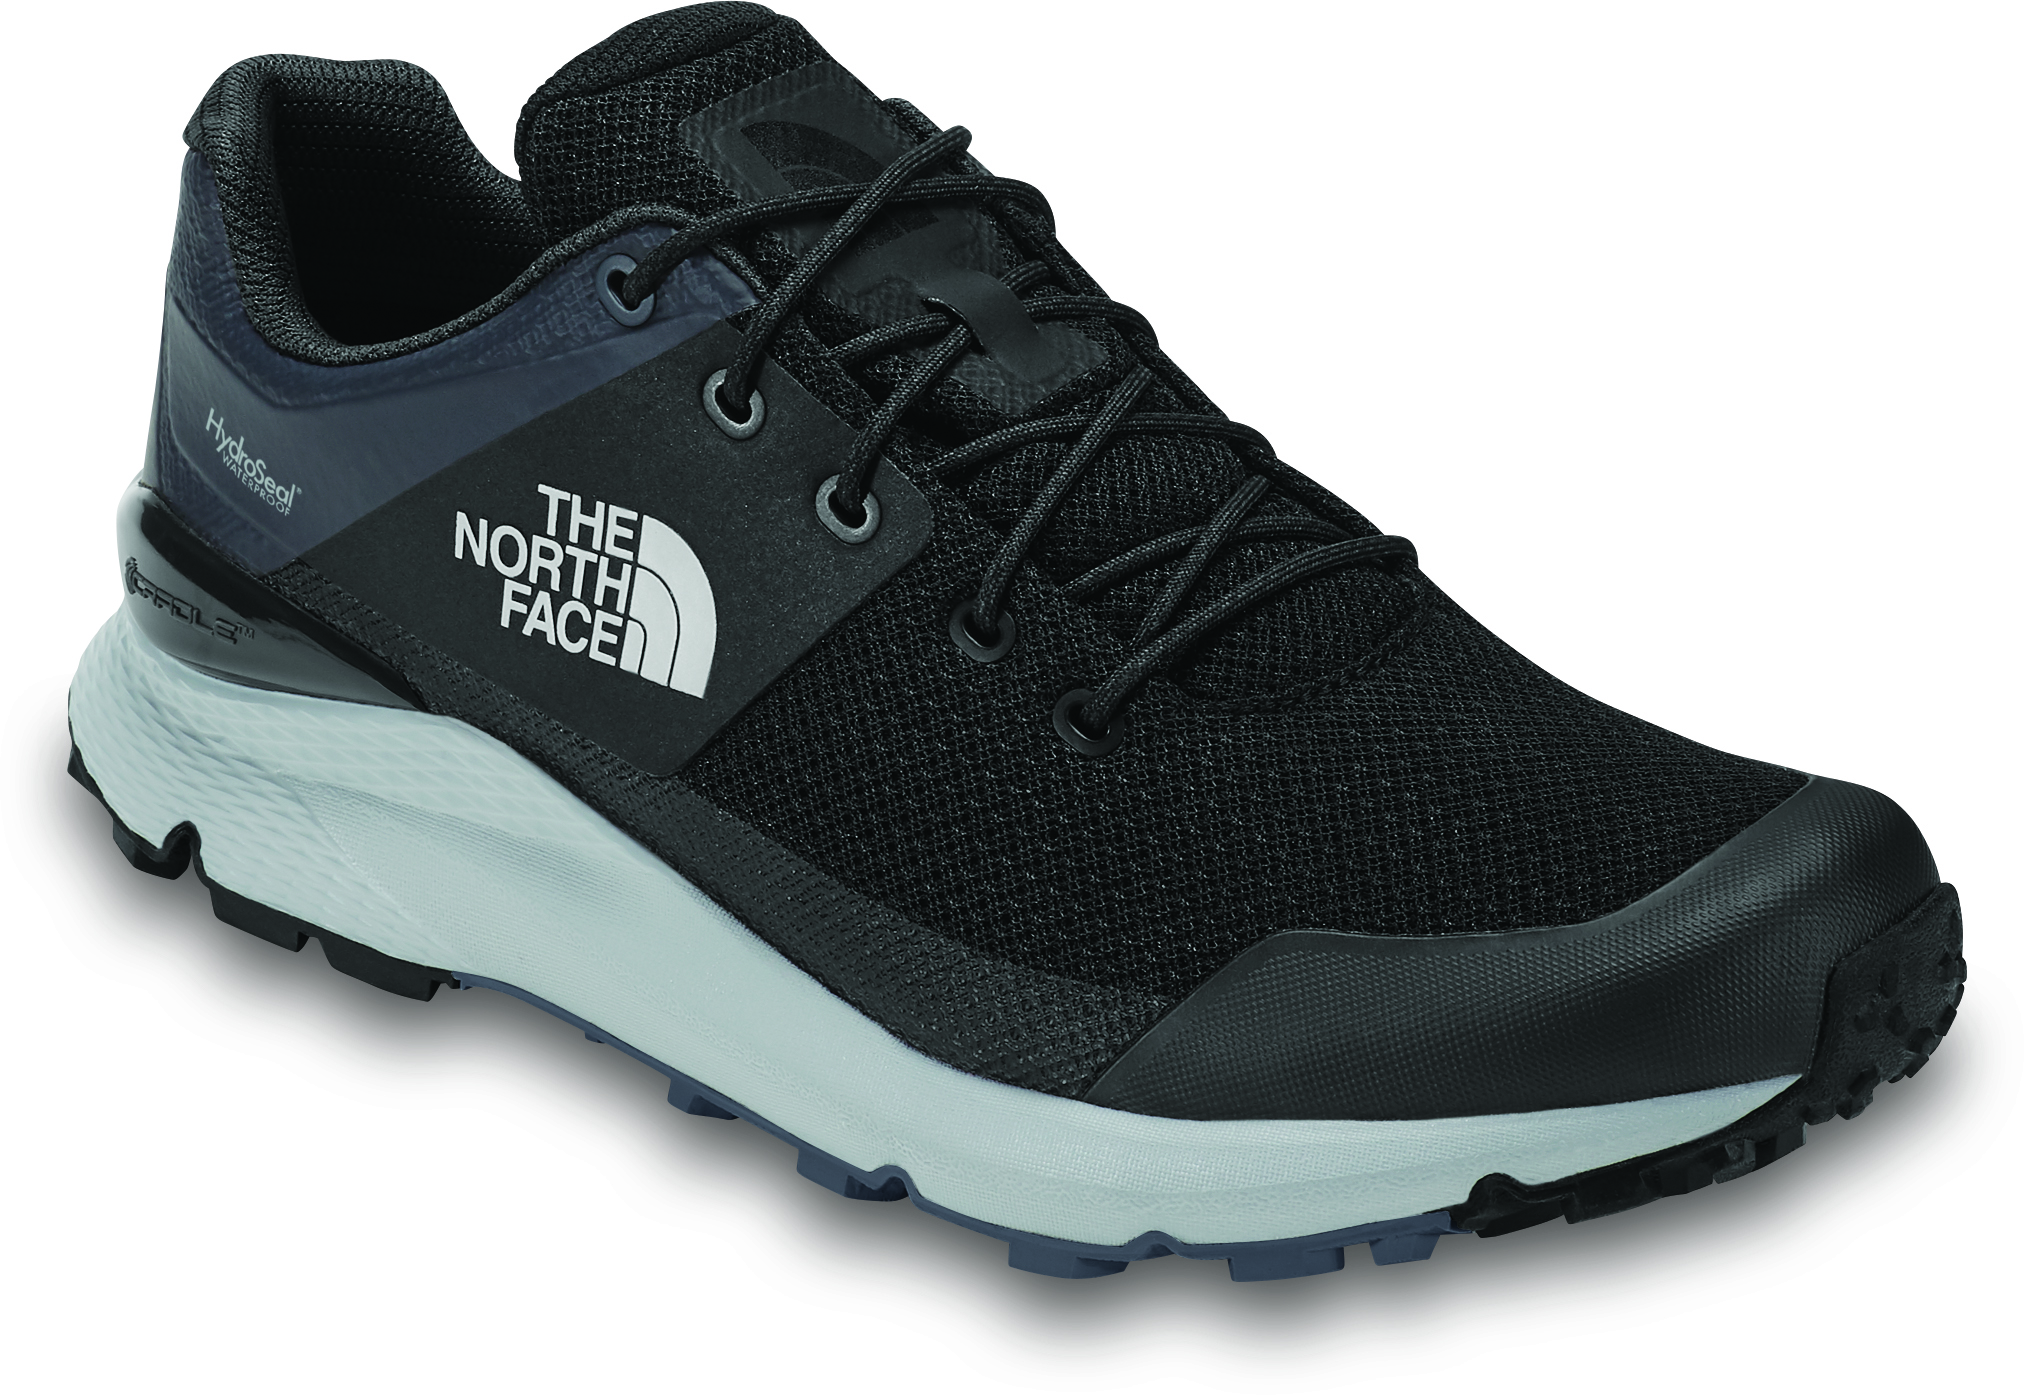 cc6011557 The North Face Vals Waterproof Trail Shoes - Men's